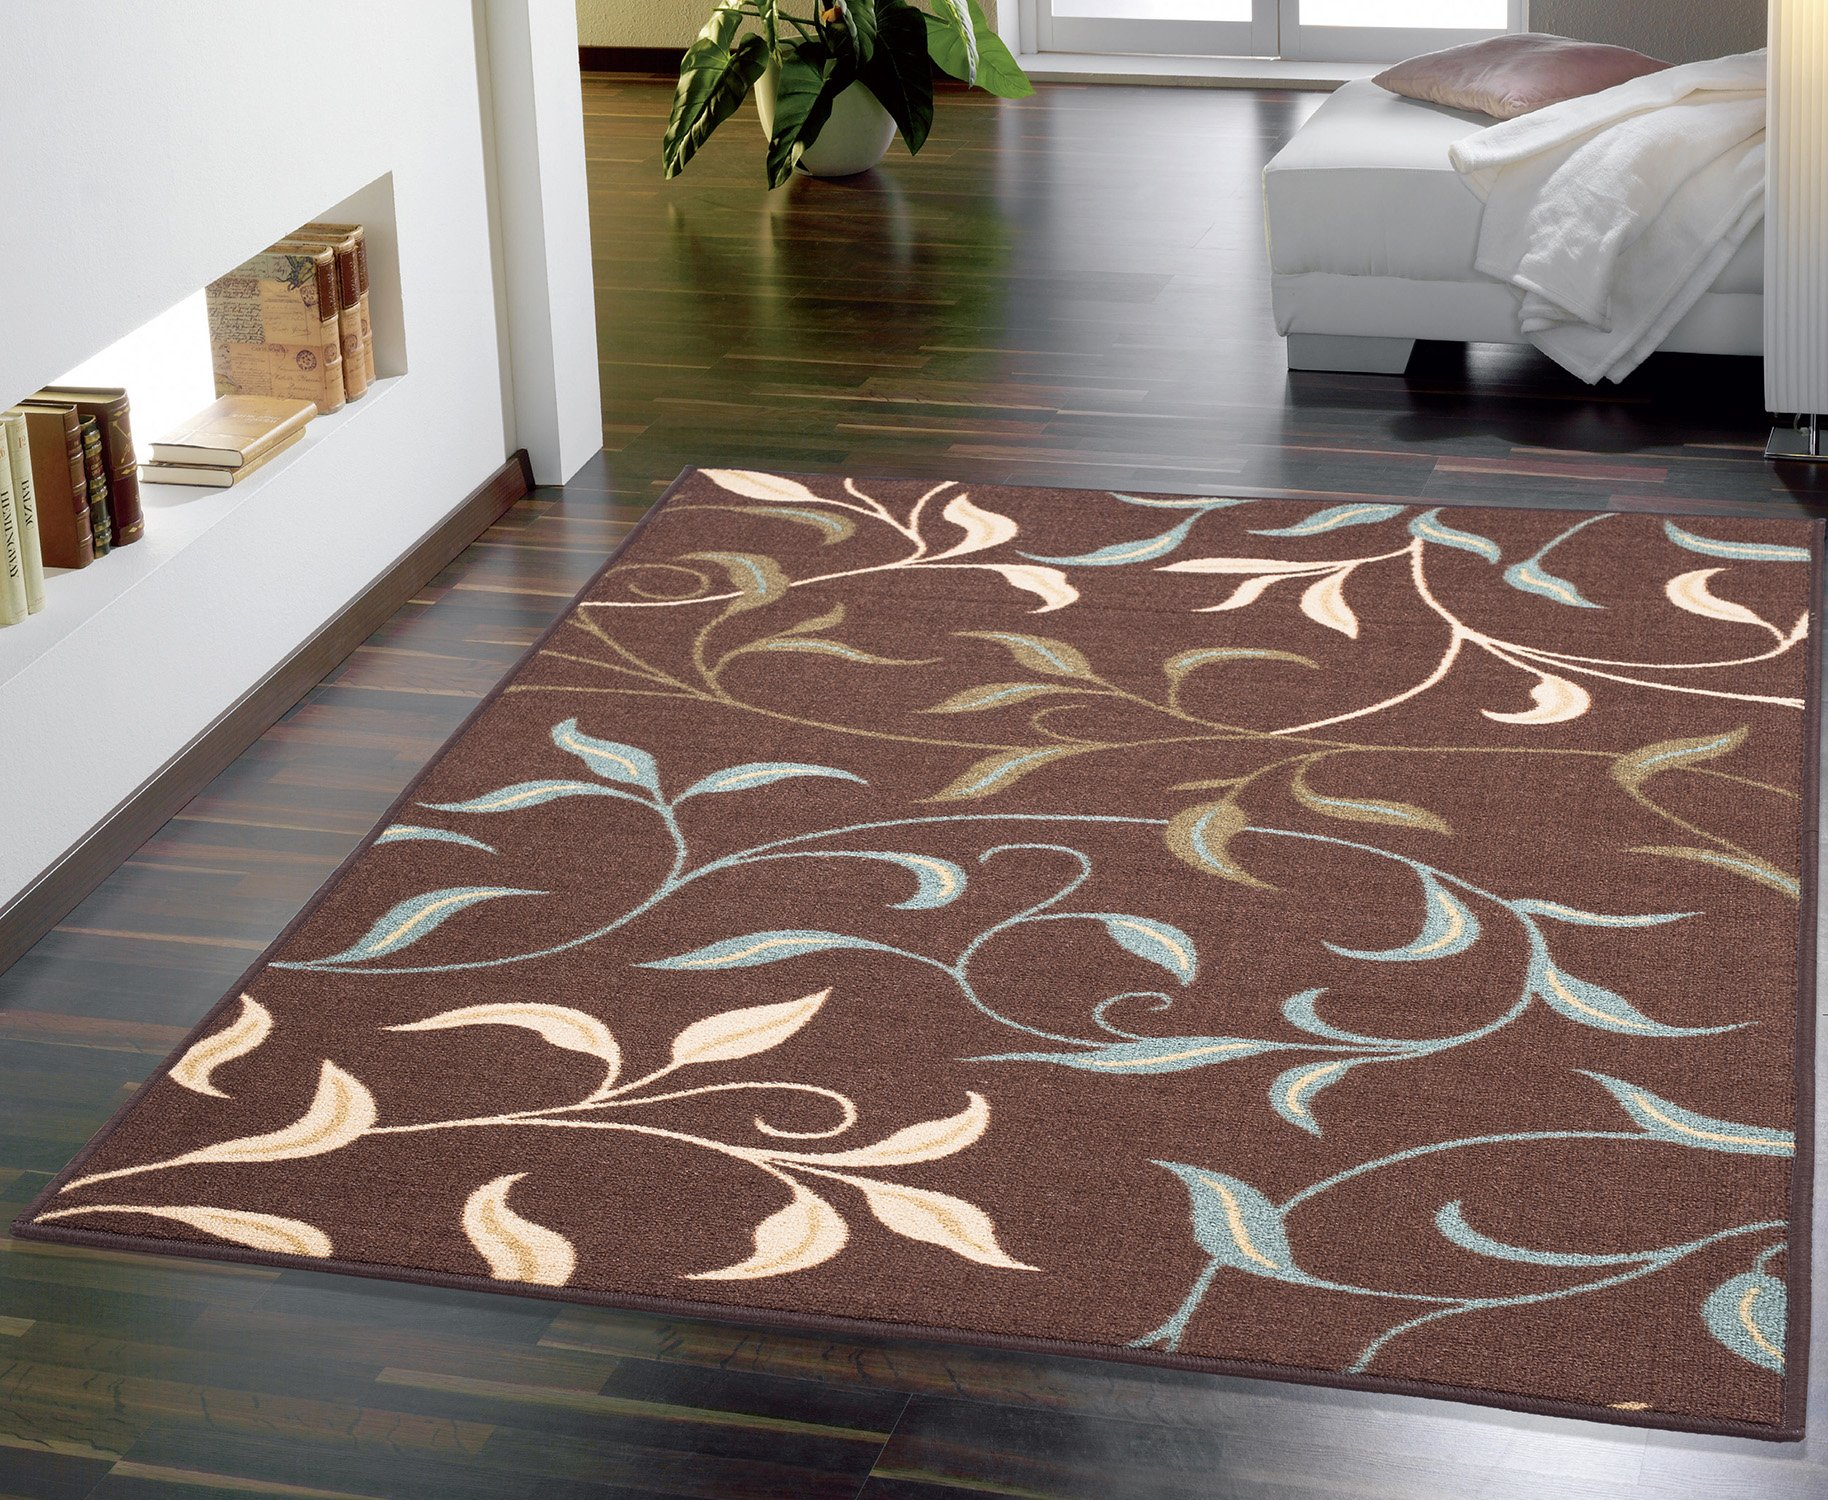 Ottomanson Ottohome Collection Contemporary Leaves Design Non-Skid Rubber Backing Modern Area Rug, 8'2'' X 9'10'', Chocolate Brown by Ottomanson